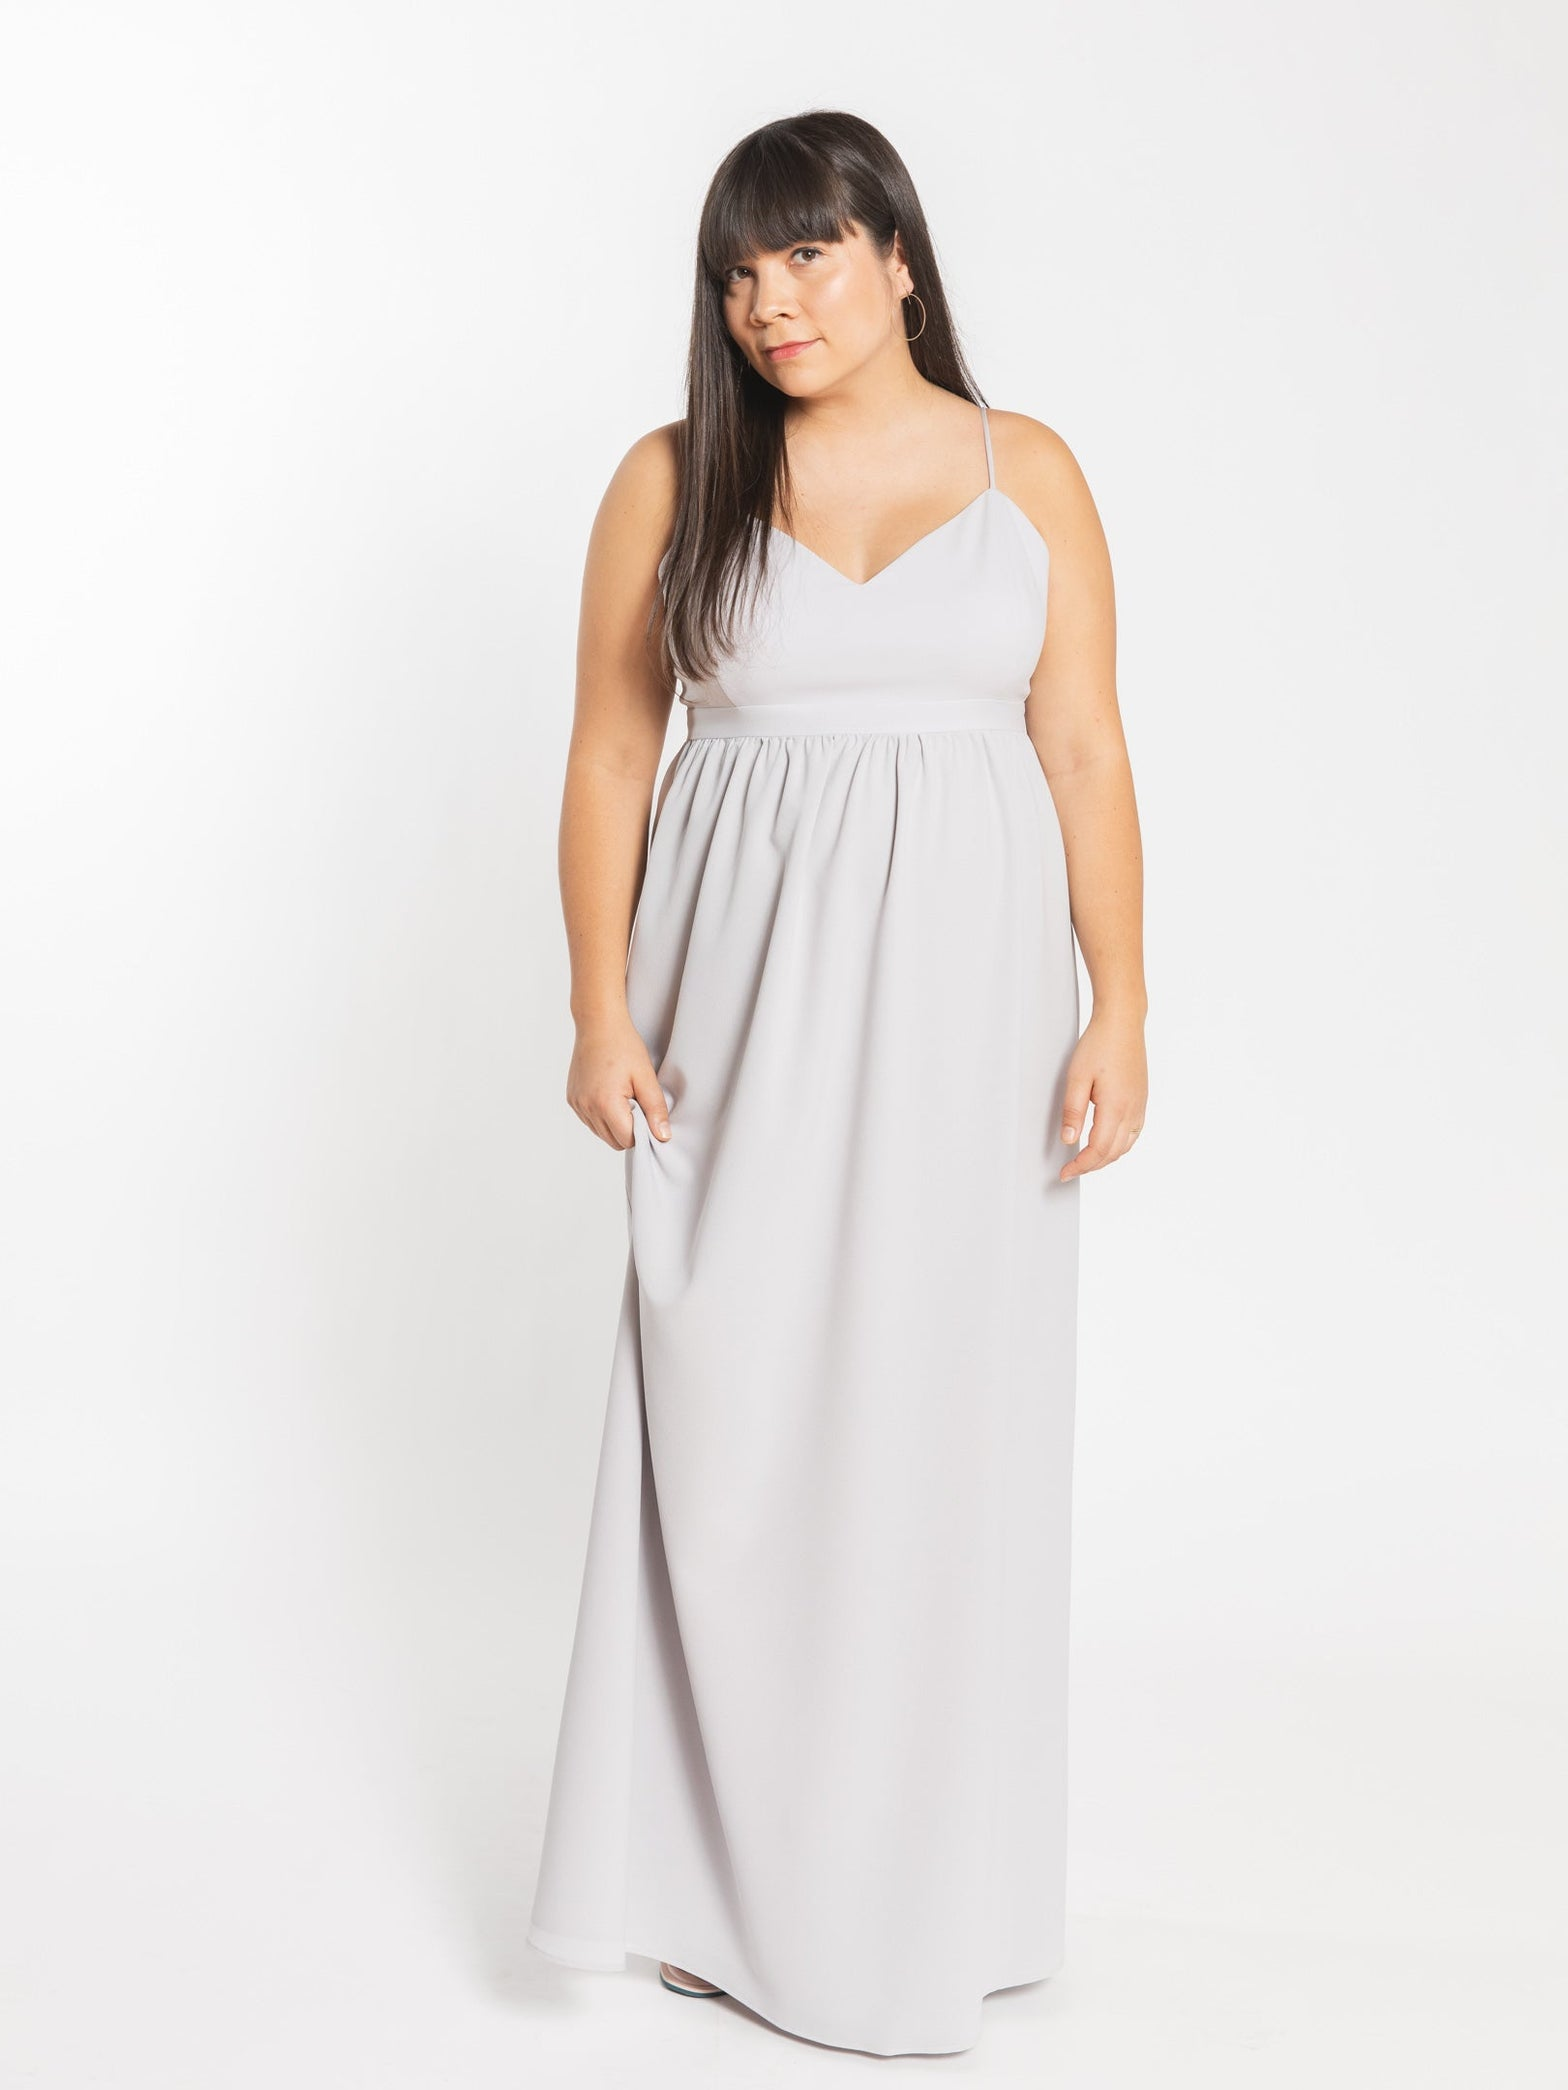 Valdes Maternity Dress